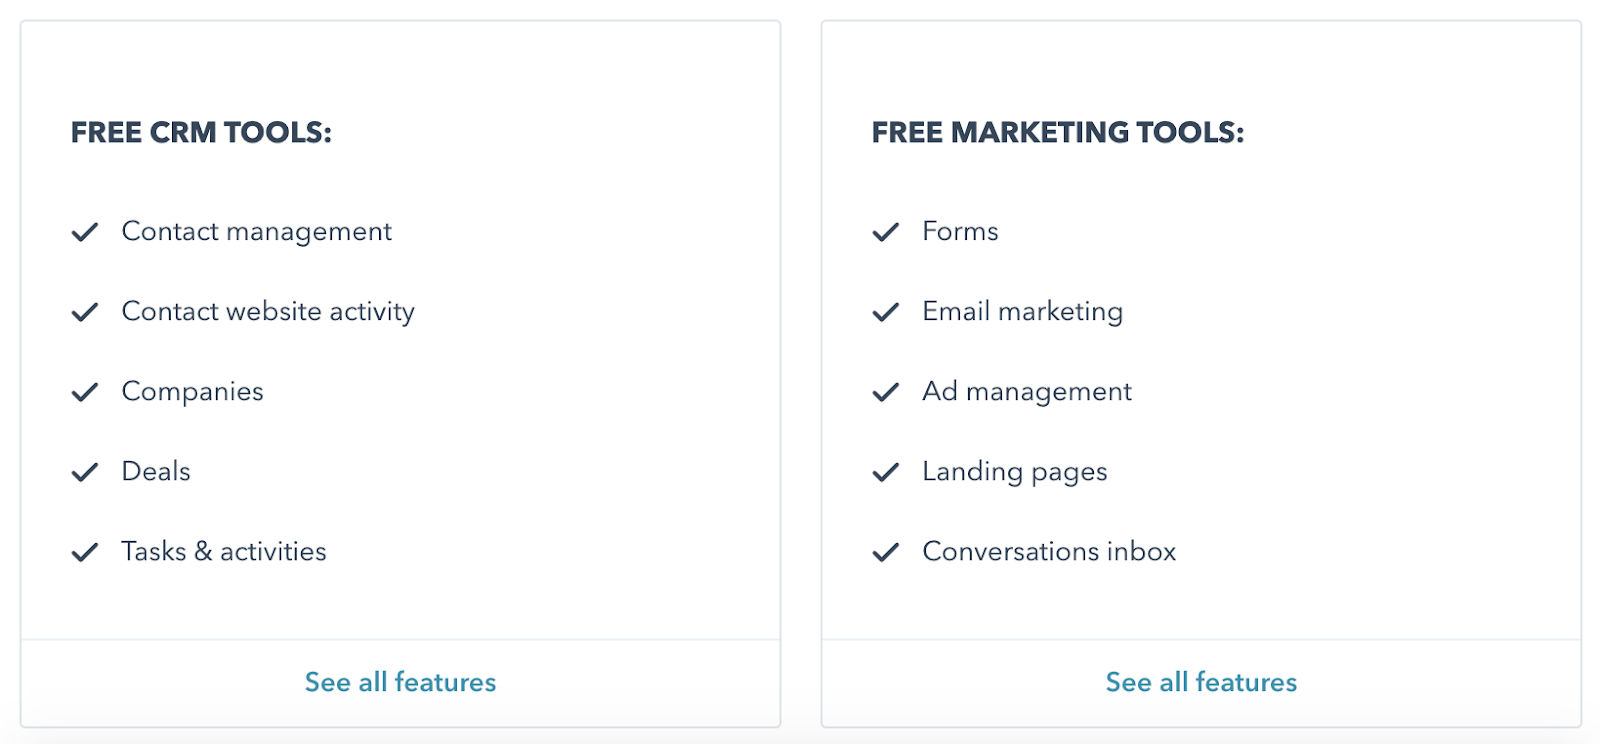 HubSpot CRM and marketing pricing